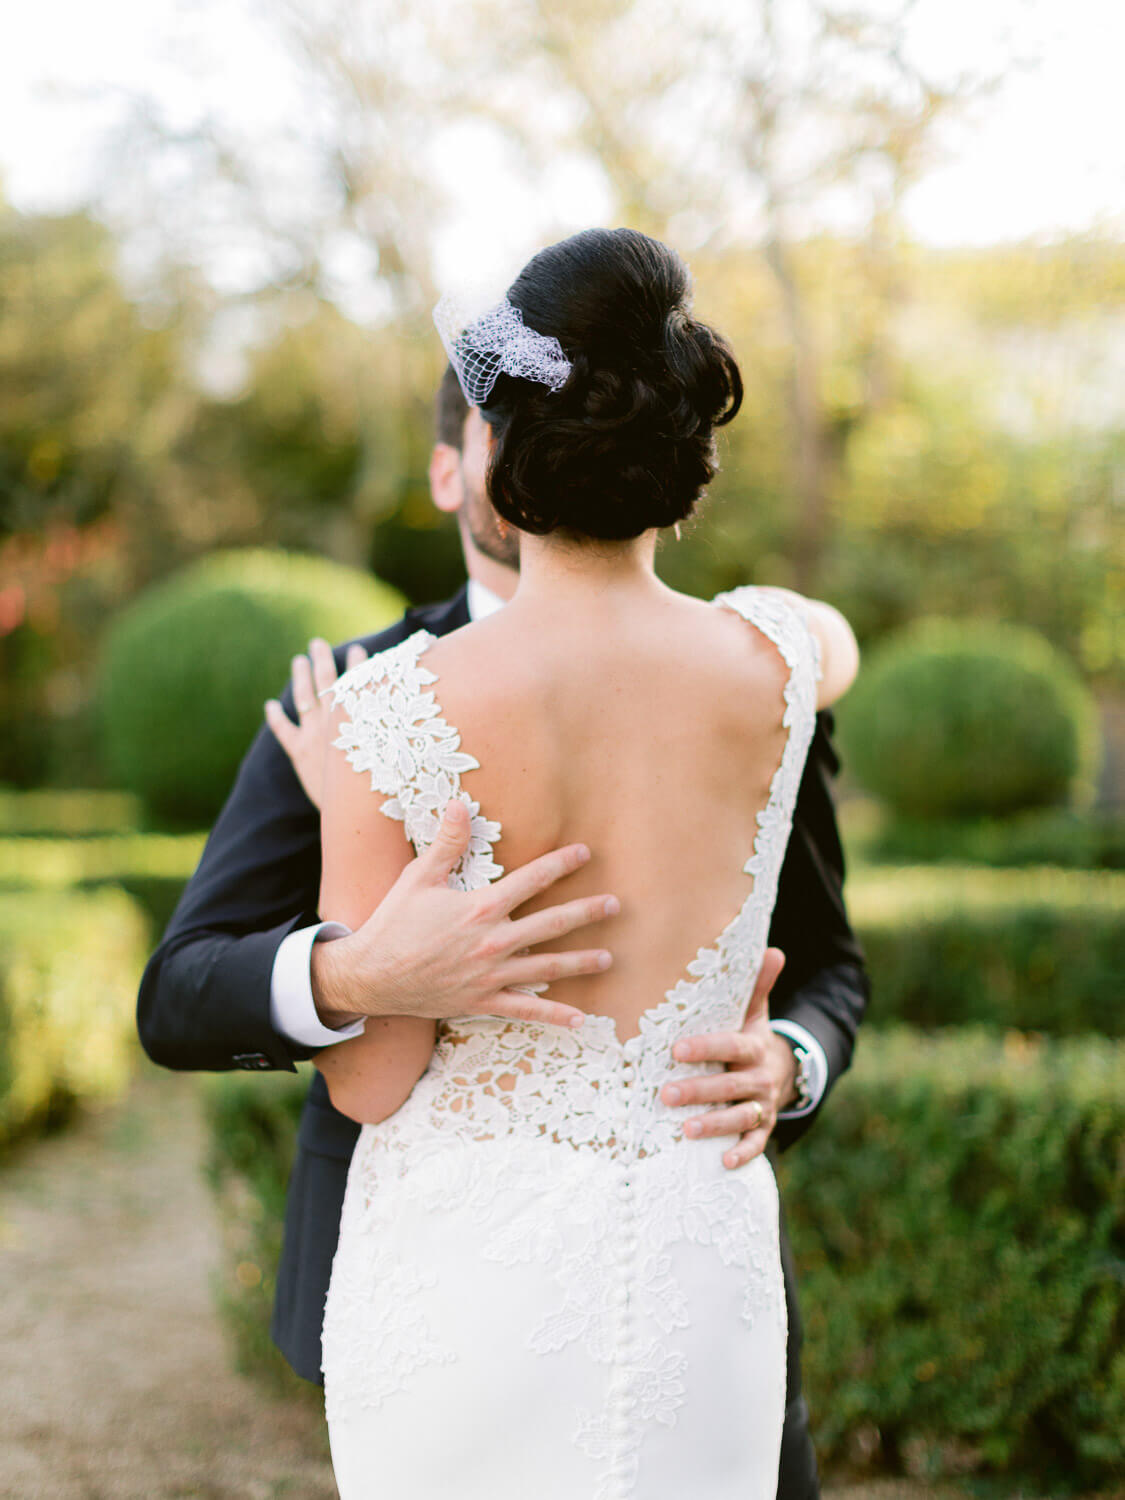 embroidered plunging back wedding dress close up by Portugal Wedding Photographer